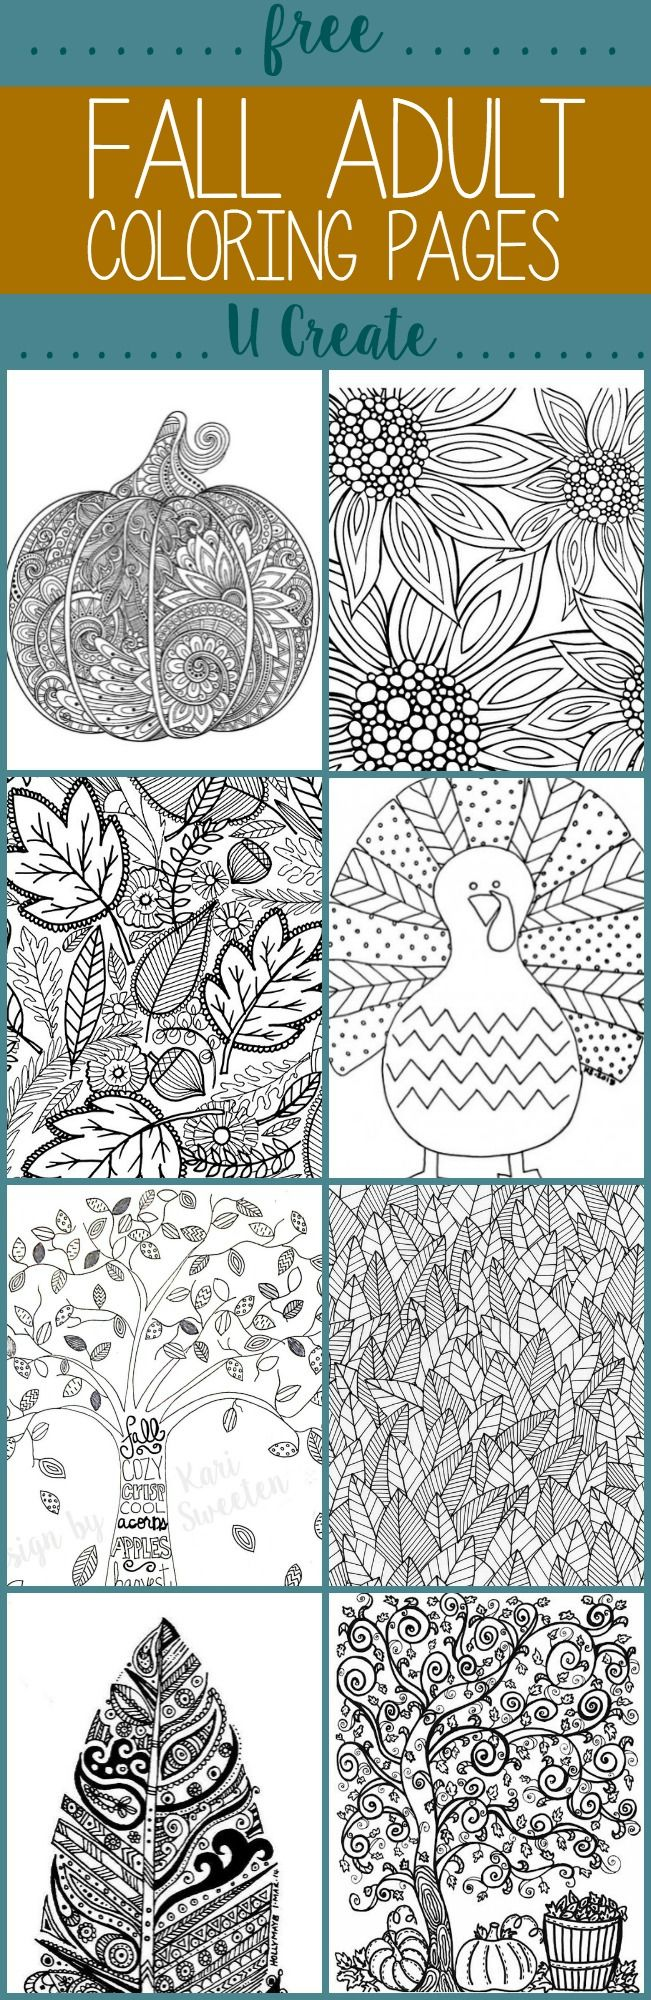 Free Fall Adult Coloring Pages (U Create) | Adult coloring, Create ...